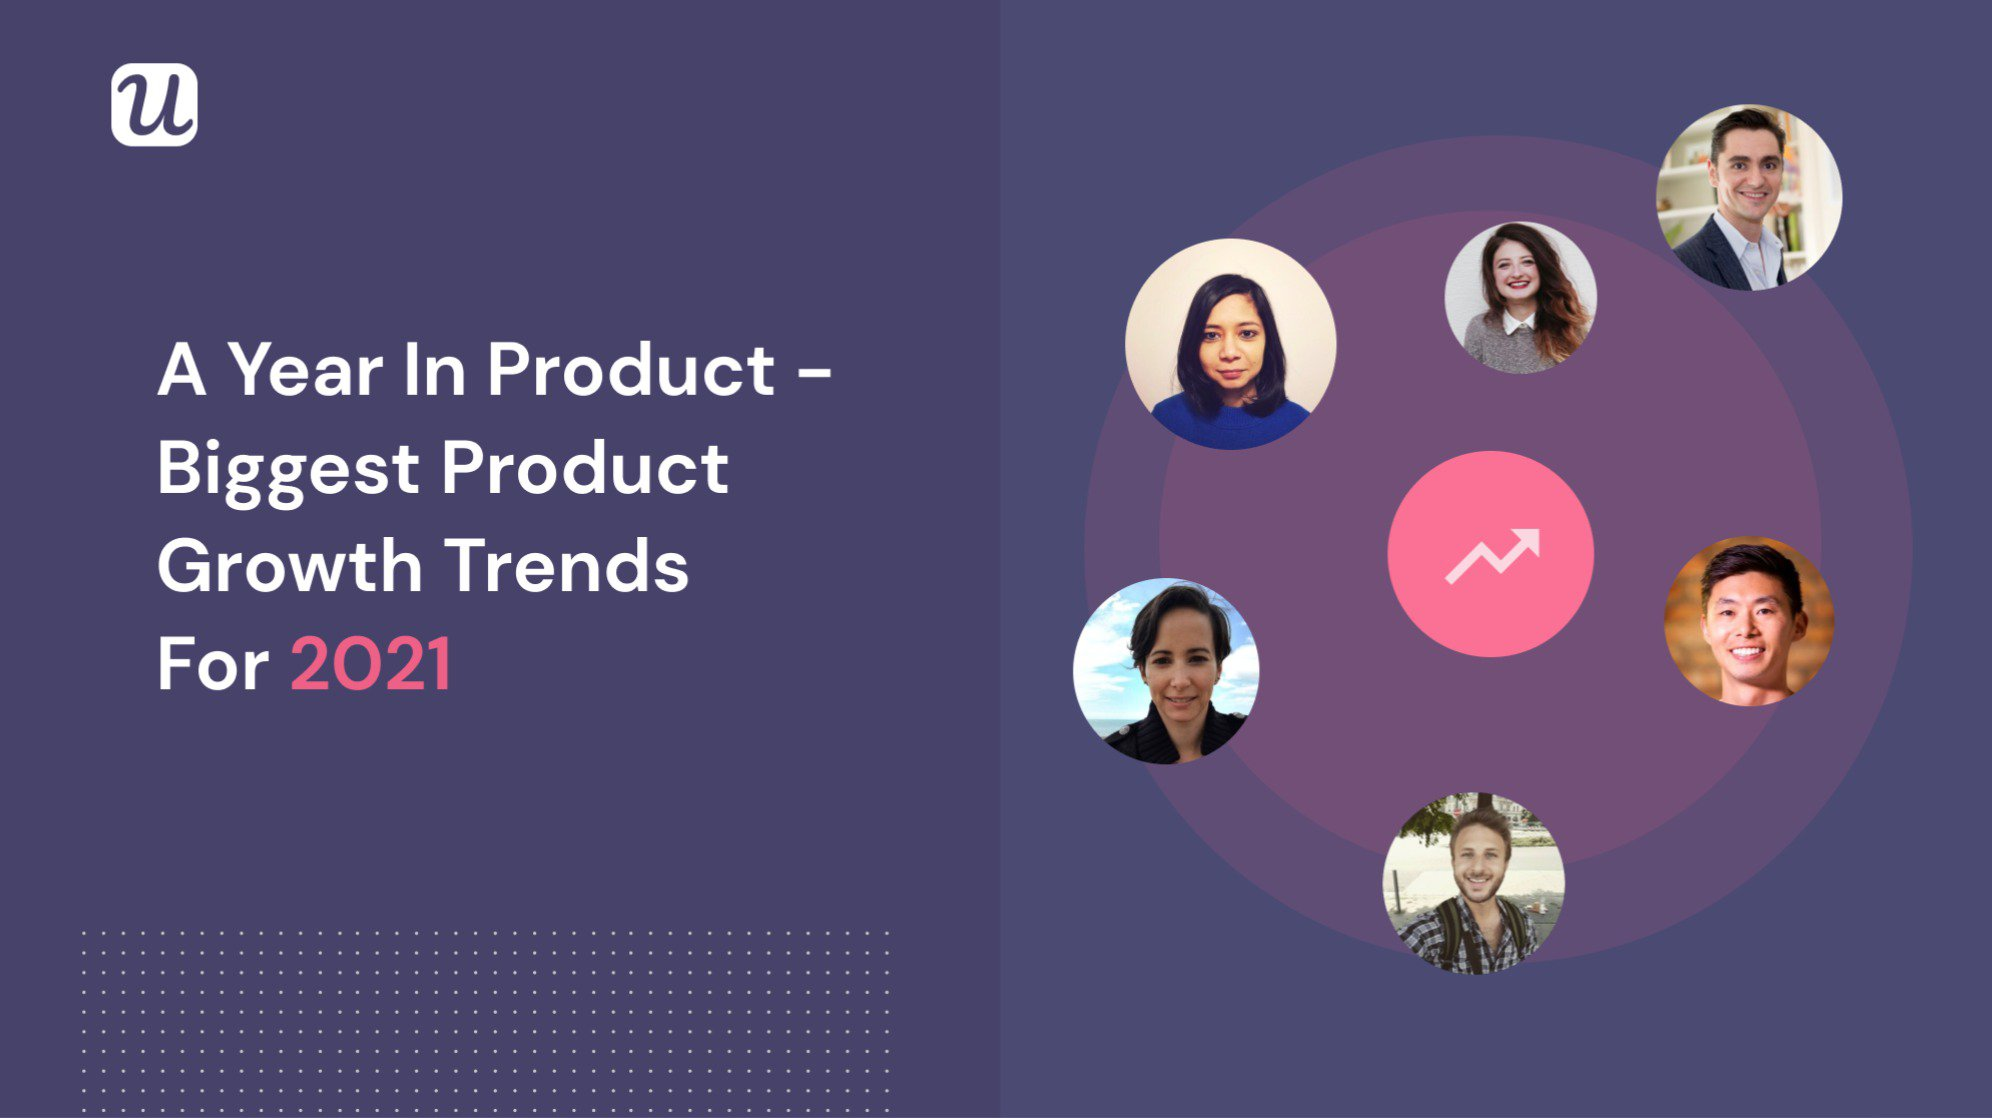 Year in Product - The Greatest Product Growth & Adoption Trends for 2021